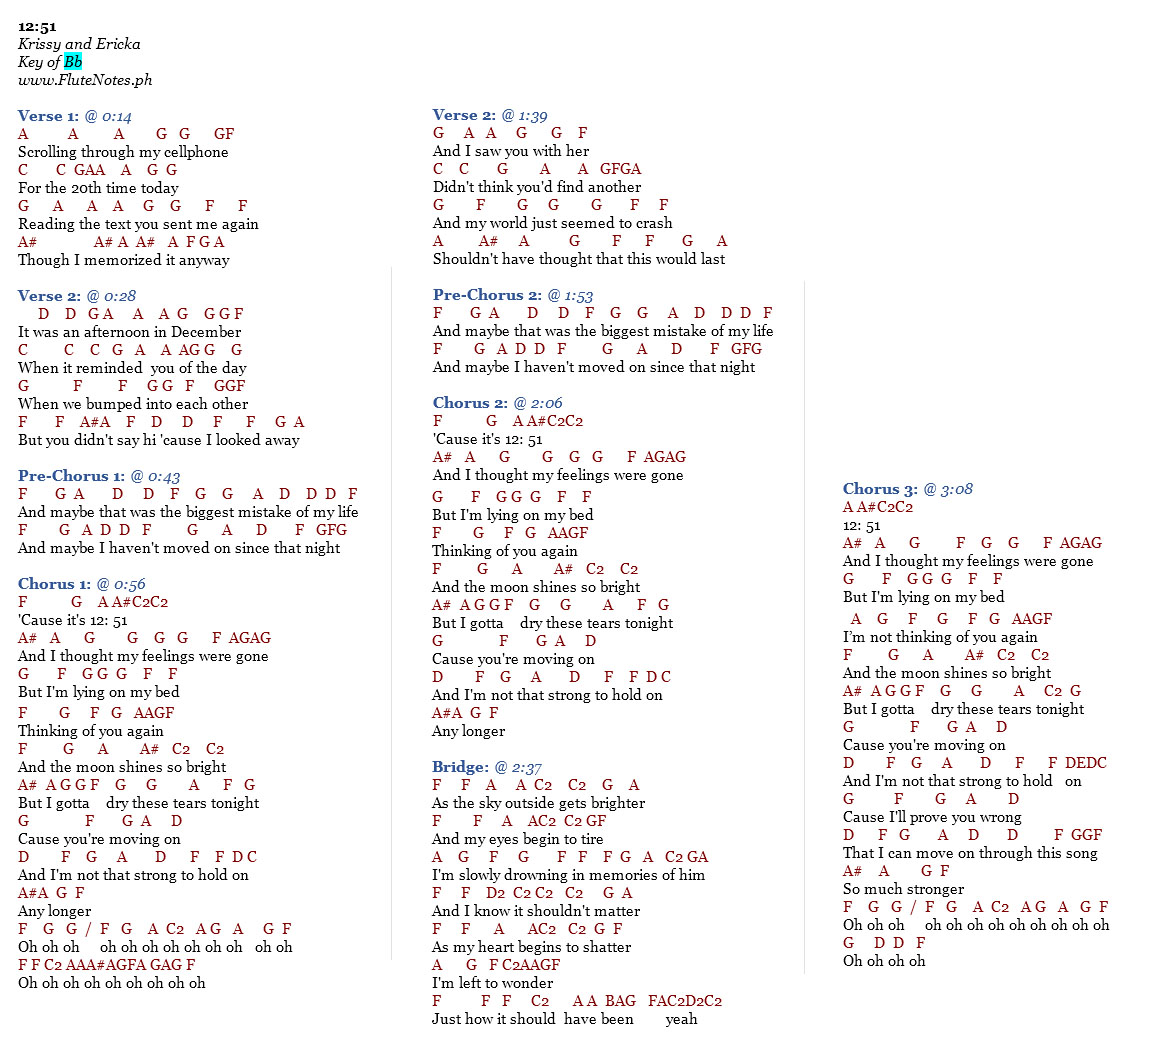 1251 twelve fifty one krissy and ericka music letter open image in new tab to enlarge hexwebz Choice Image